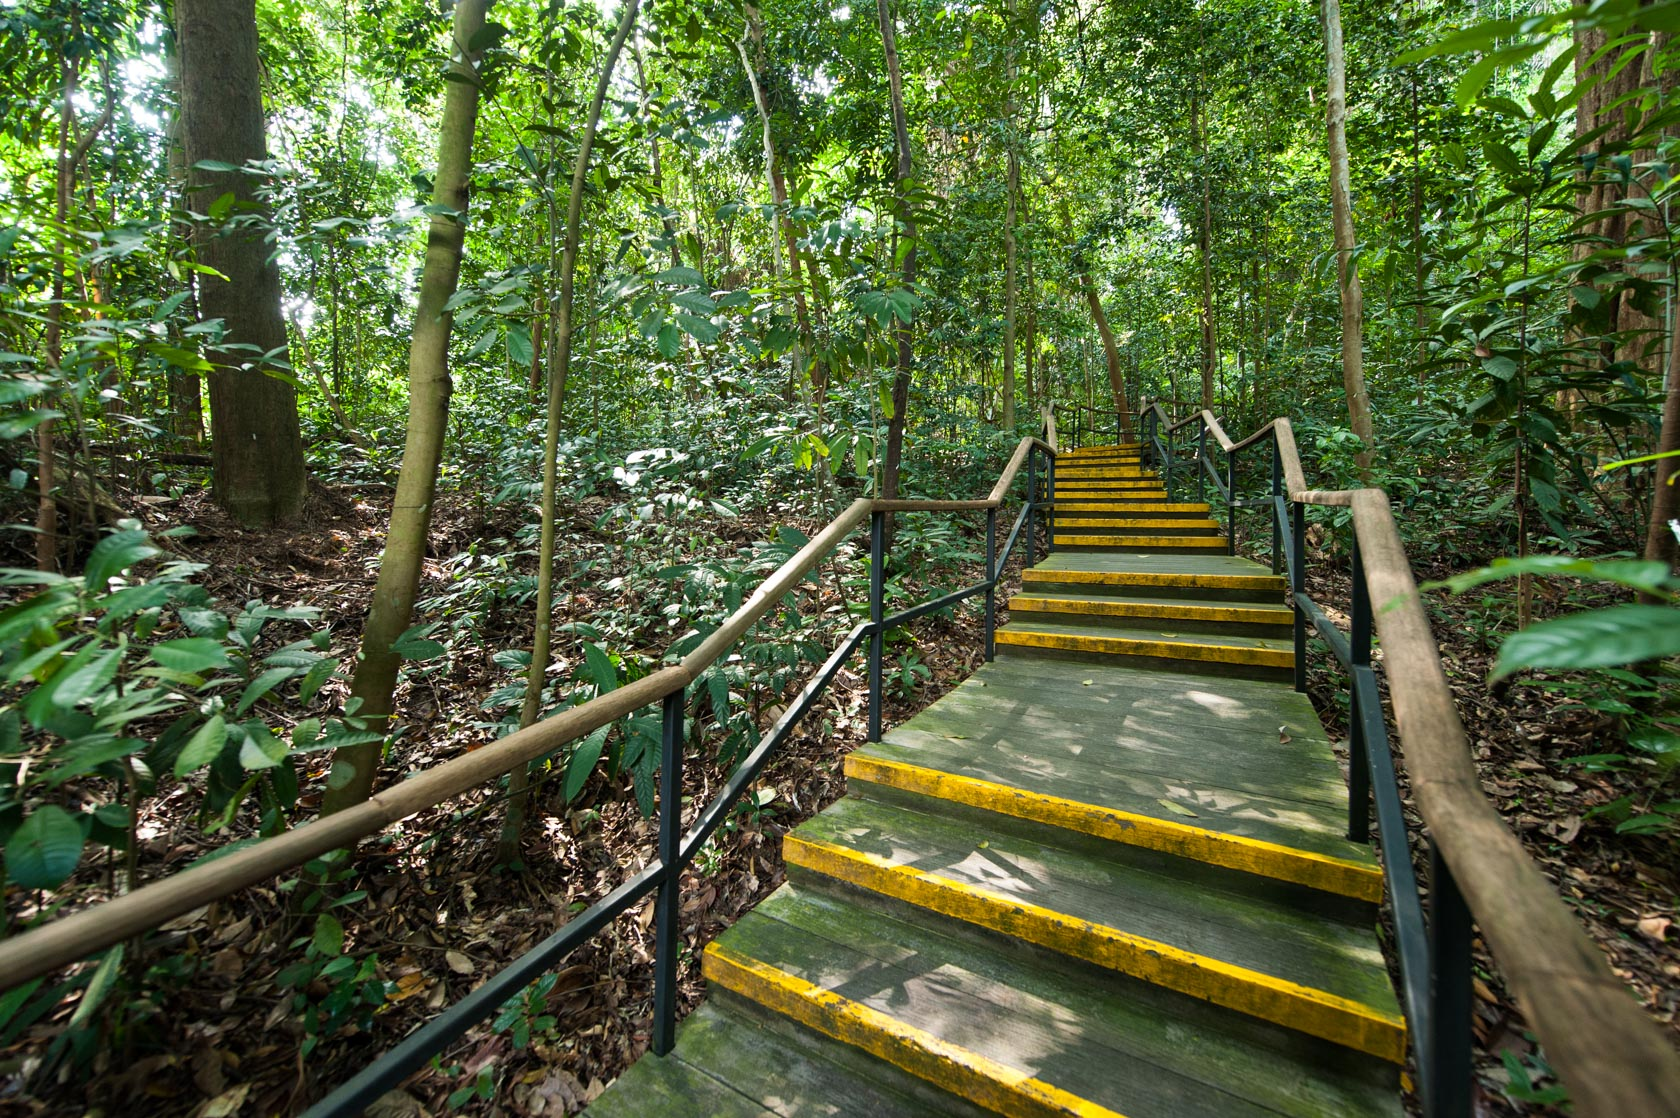 Stairway leading to the North entrance of the Rain Forest